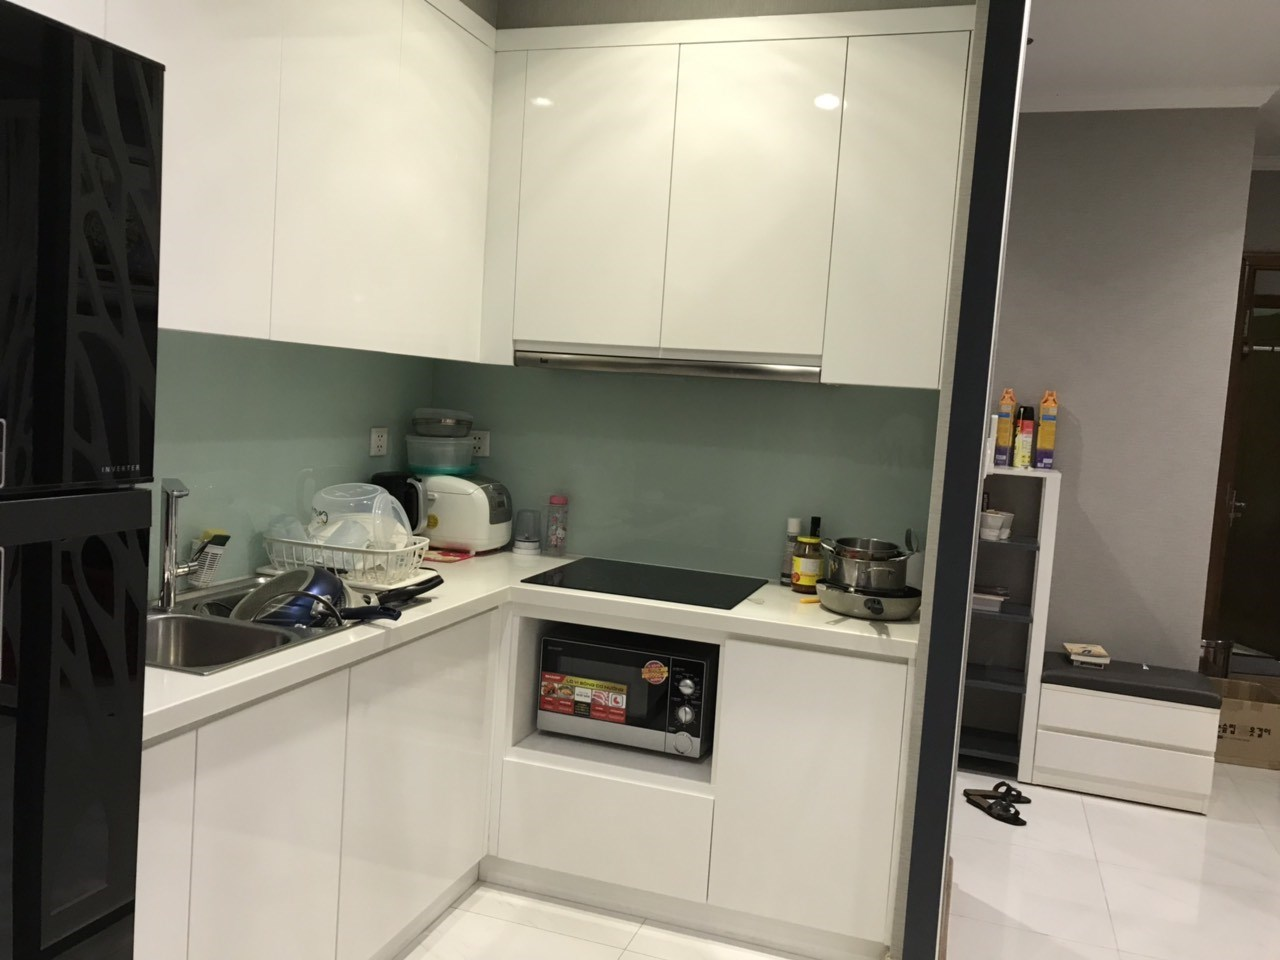 VCP89495 - Vinhomes Central Park Apartments For Rent & Sale In Ho Chi Minh City - 2 bedroom